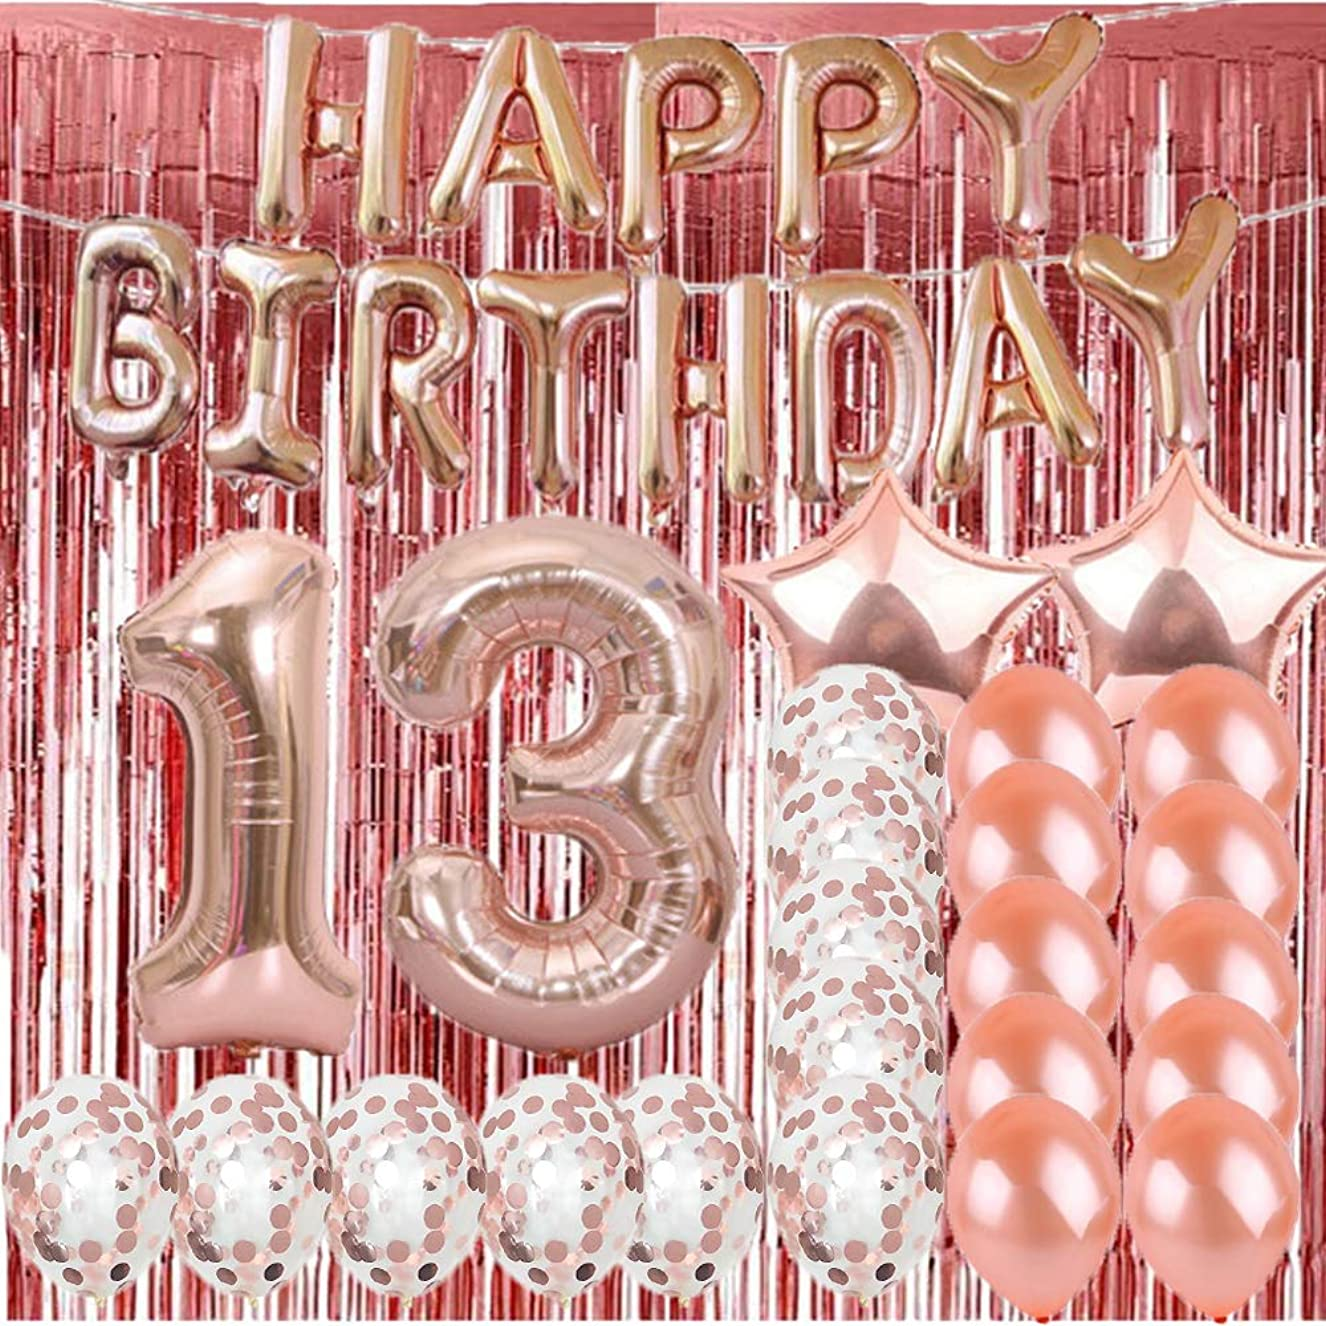 Sweet 13th Birthday Decorations Party Supplies,Rose Gold Number 13 Balloons,13th Mylar Balloons Rose Gold Foil Fringe Curtains Photo Backdrop Great 13th Birthday Gifts for Girls,Women,Men,Photo Props fiintirghl6536